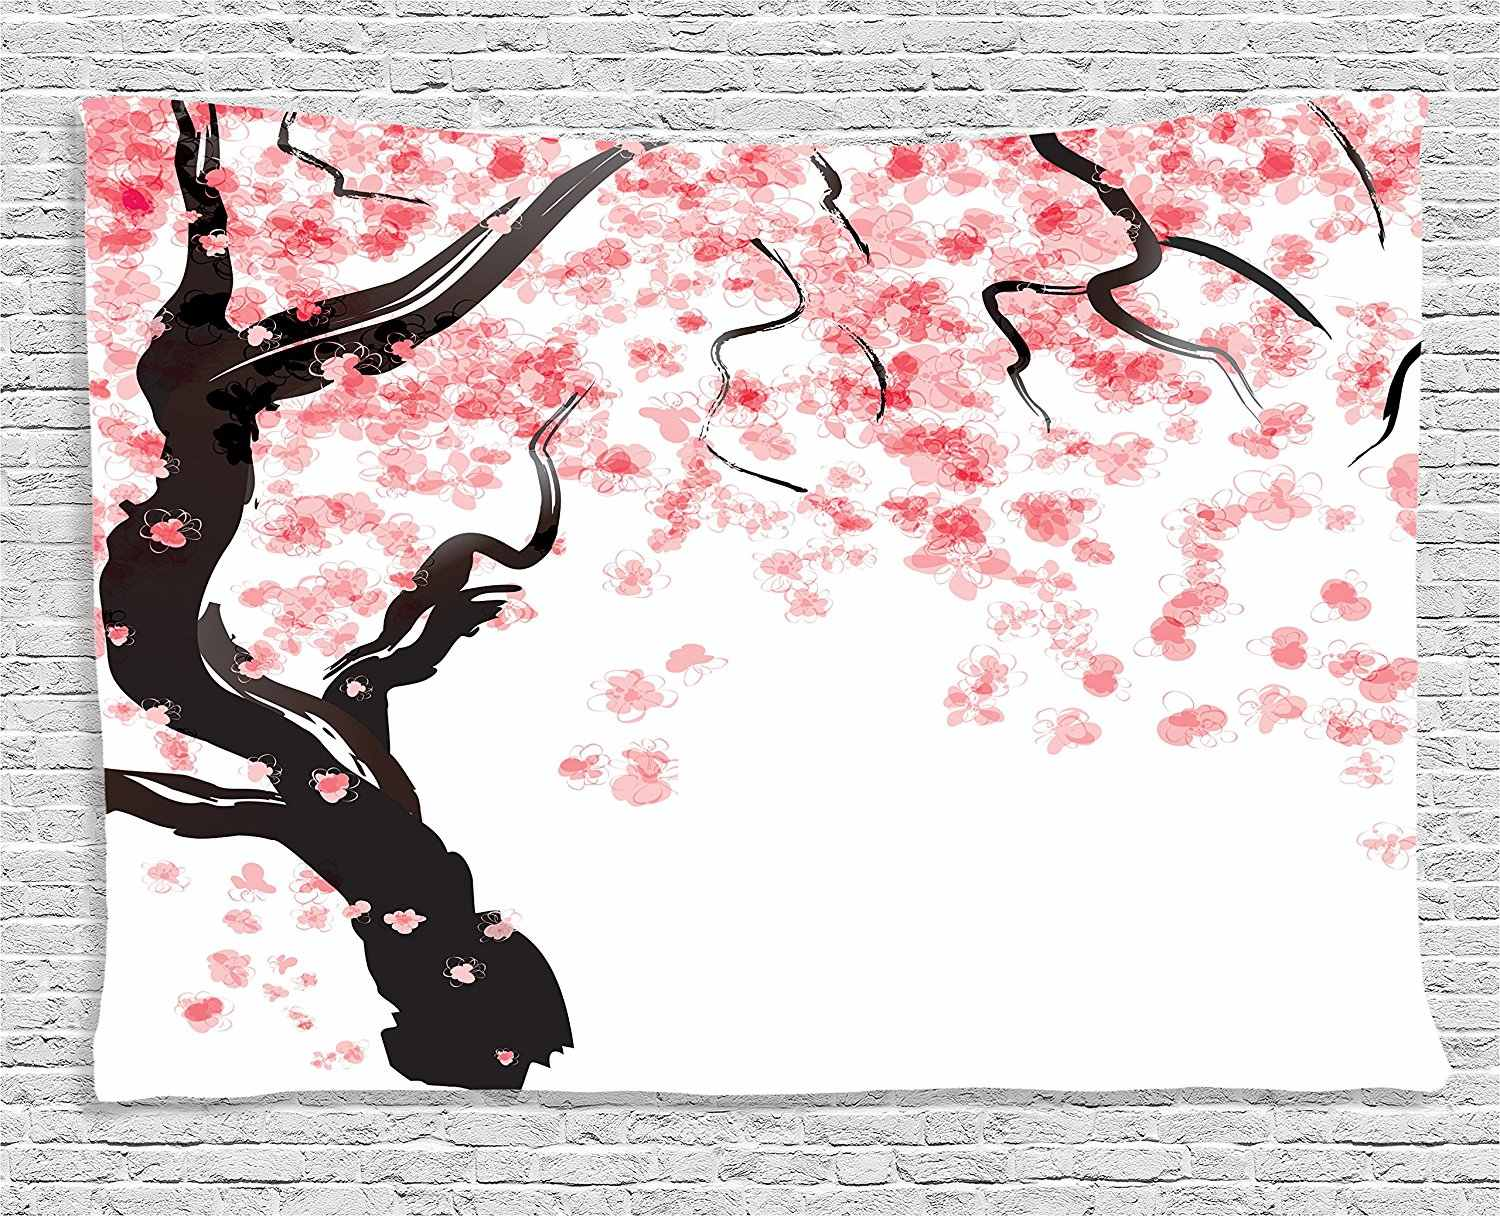 House Decor Collection Japanese Cherry Tree Blossom in Watercolor Painting Effect Oriental Stylized Art Deco Bedroom